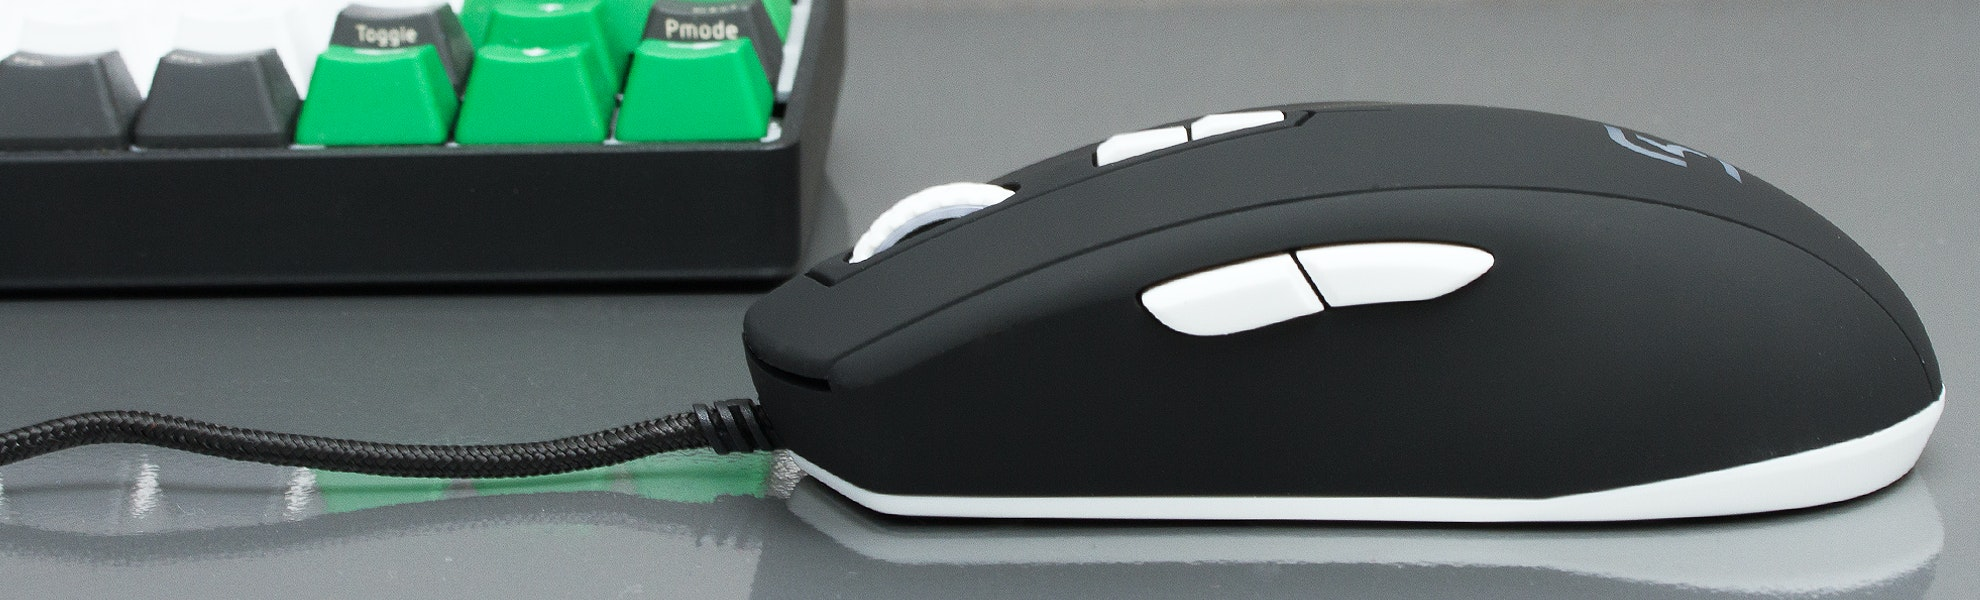 Mionix Avior SK Mouse